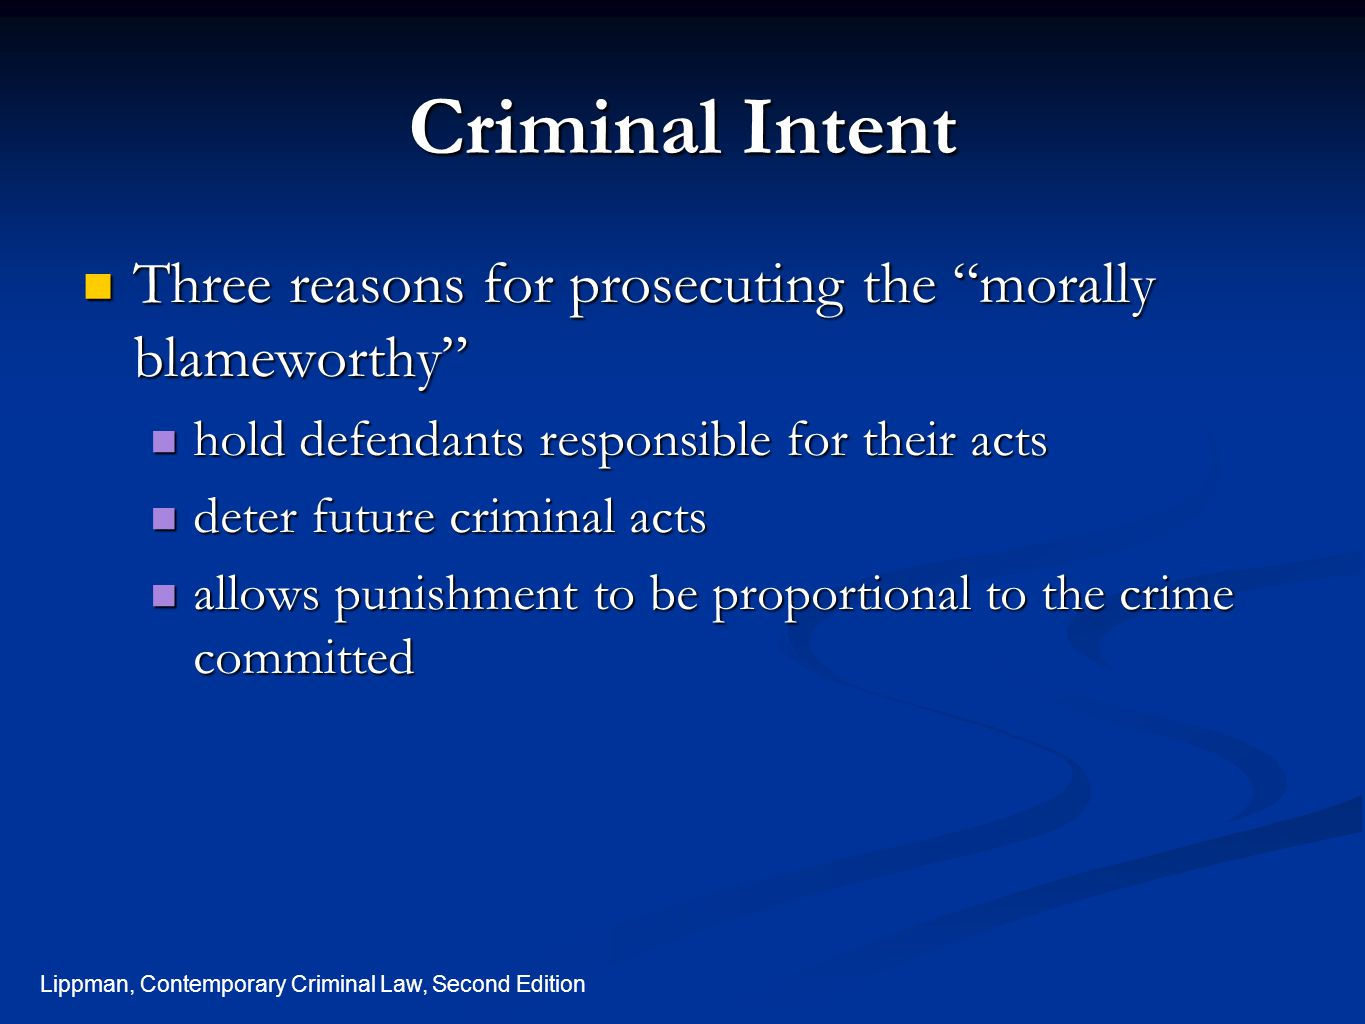 Criminal+Intent+Three+reasons+for+prosec